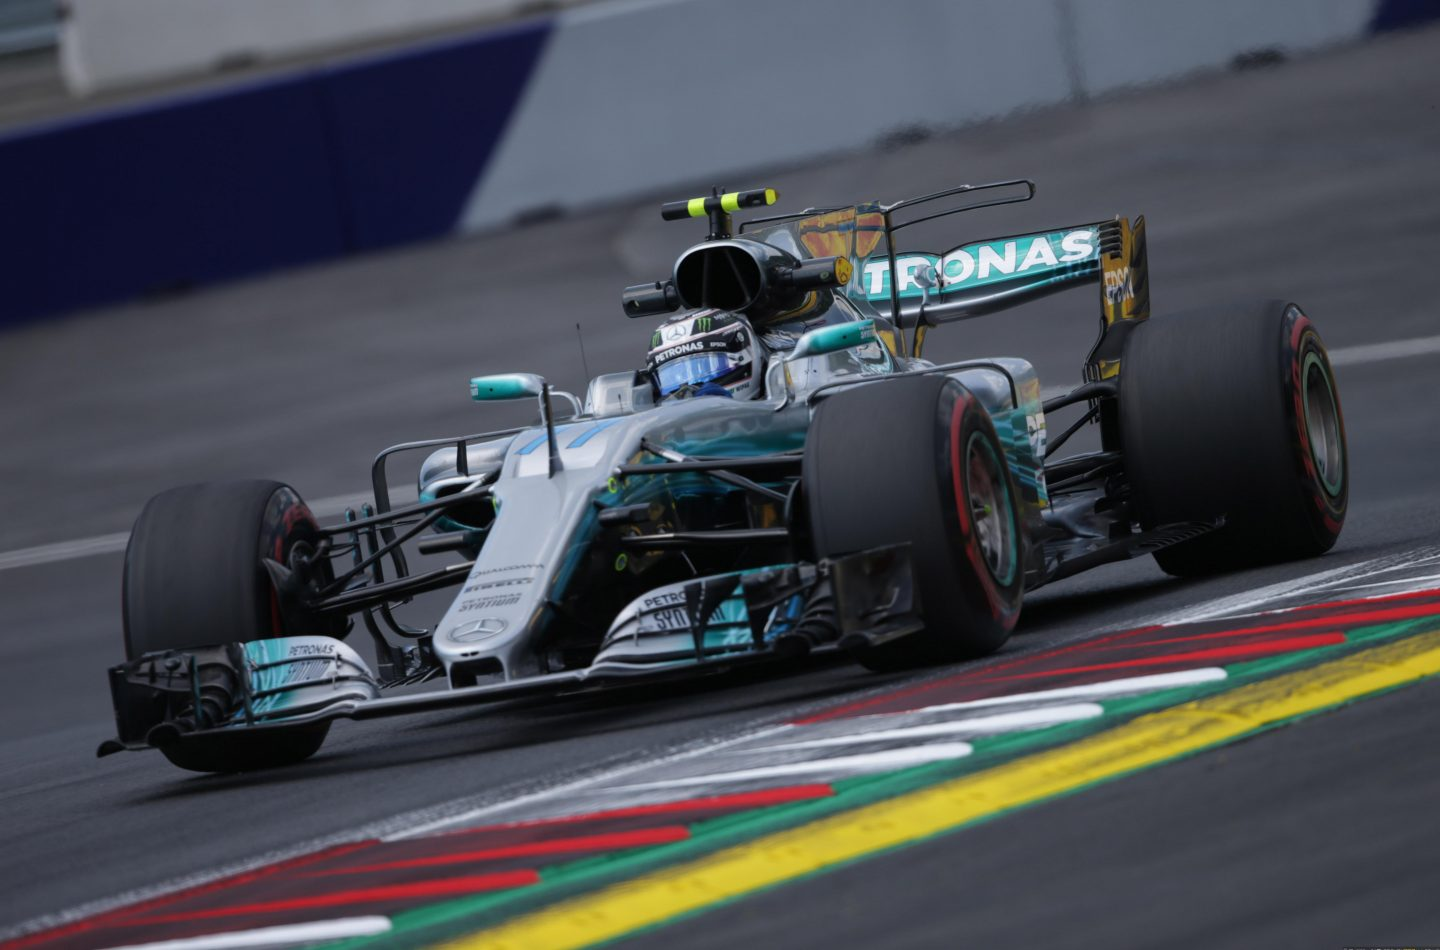 F1 | GP Austria, Bottas in pole position su Vettel e Raikkonen